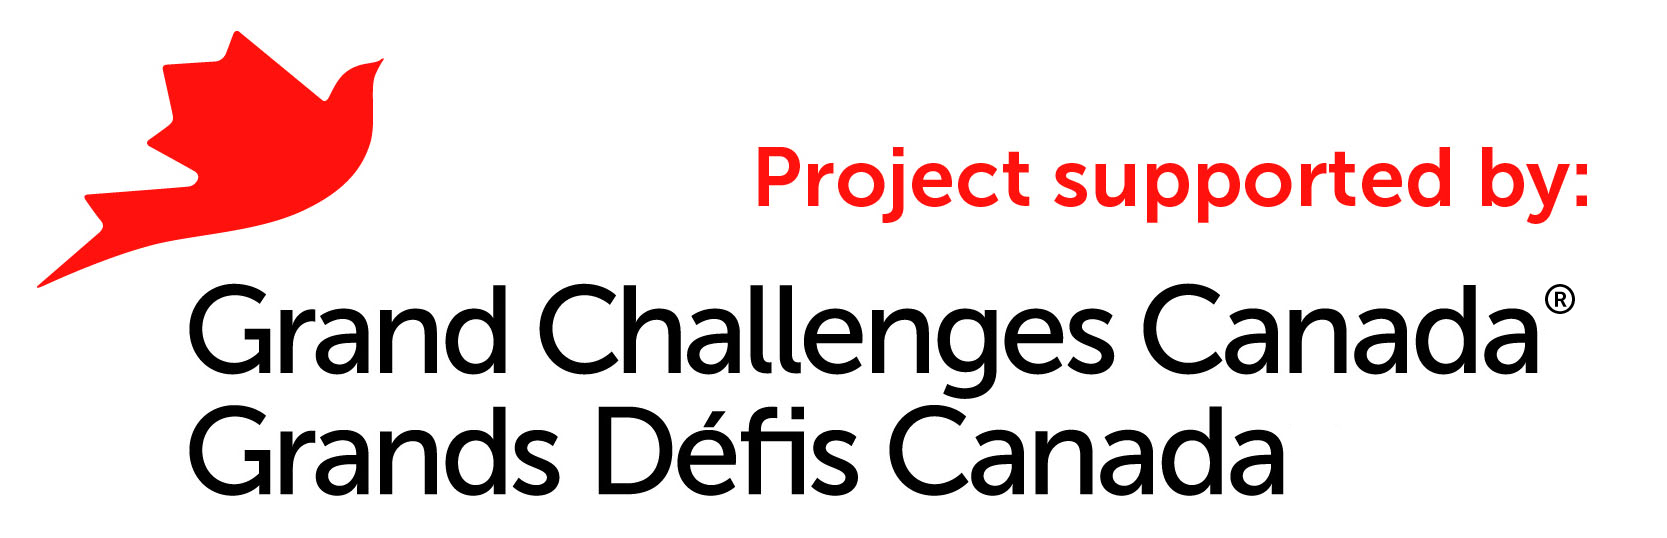 Grand Challenges Canada is funded by the Government of Canada andsupports bold ideas with big impact in global health